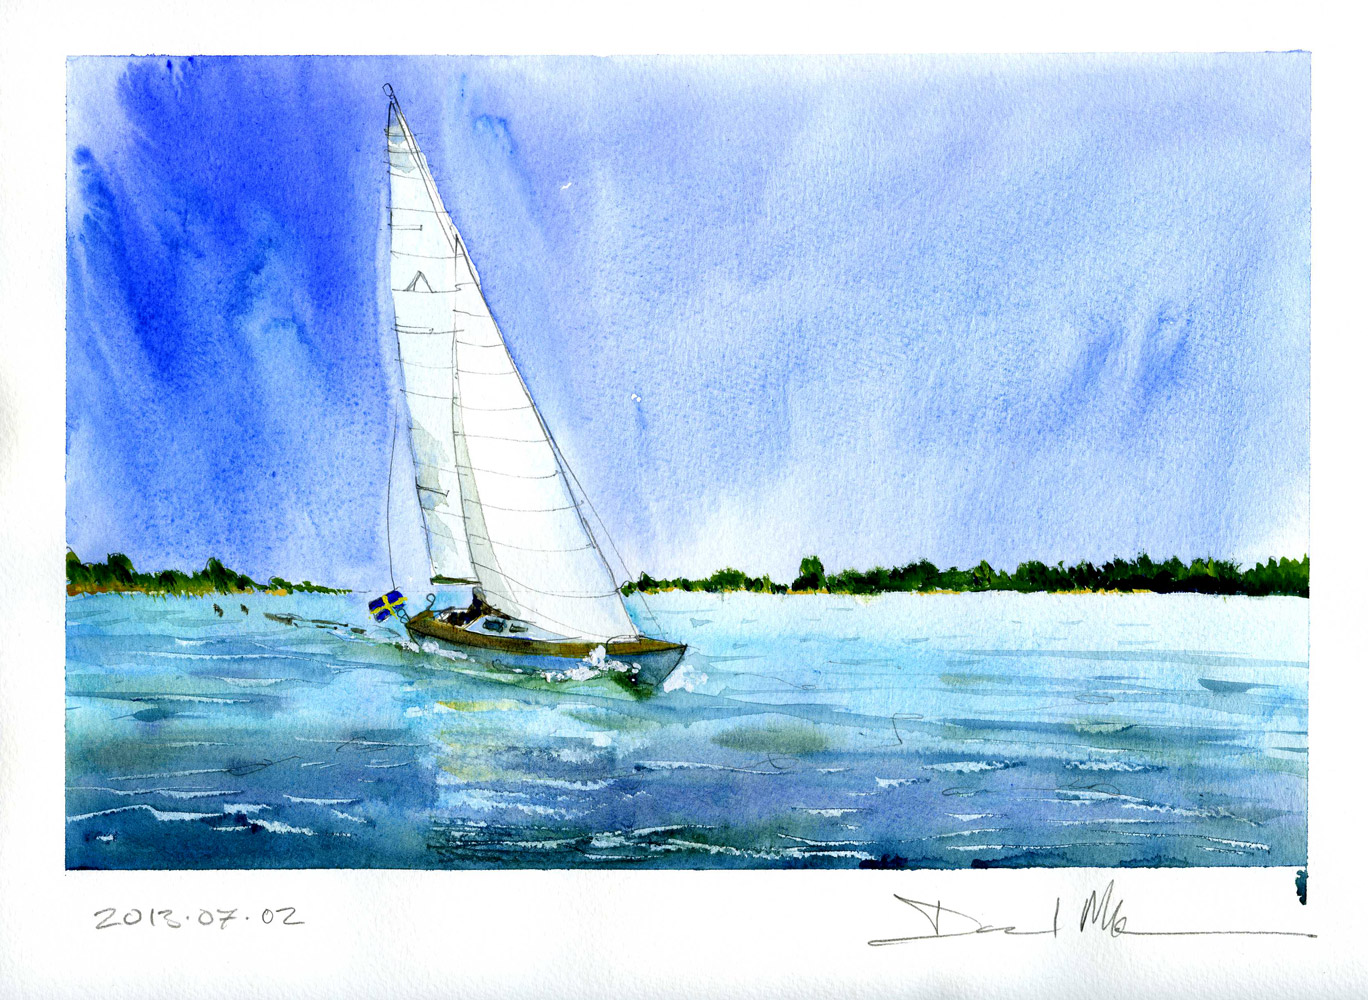 Sailing boat in the archipelago by David Meldrum